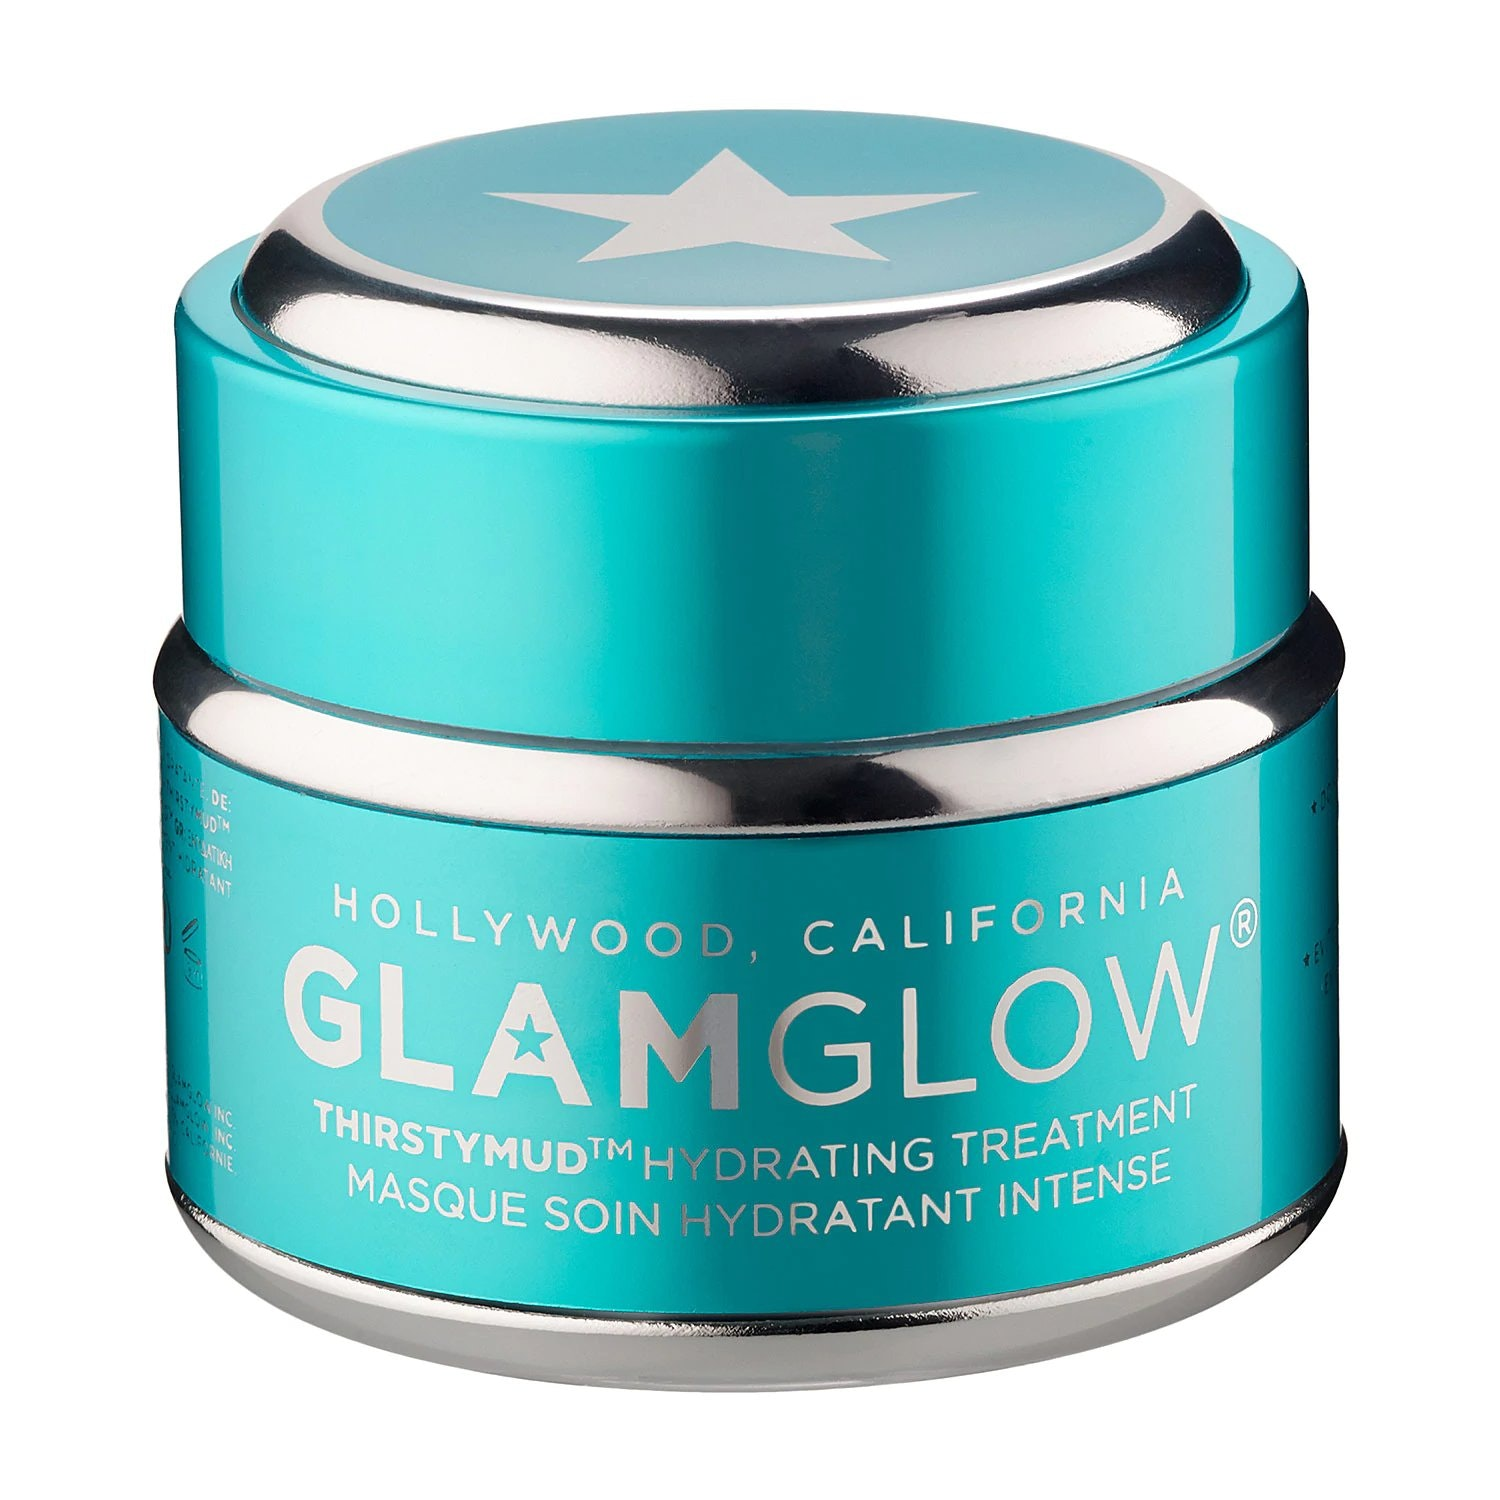 Glamglow Thirstymud™ 24-Hour Hydrating Treatment Face Mask